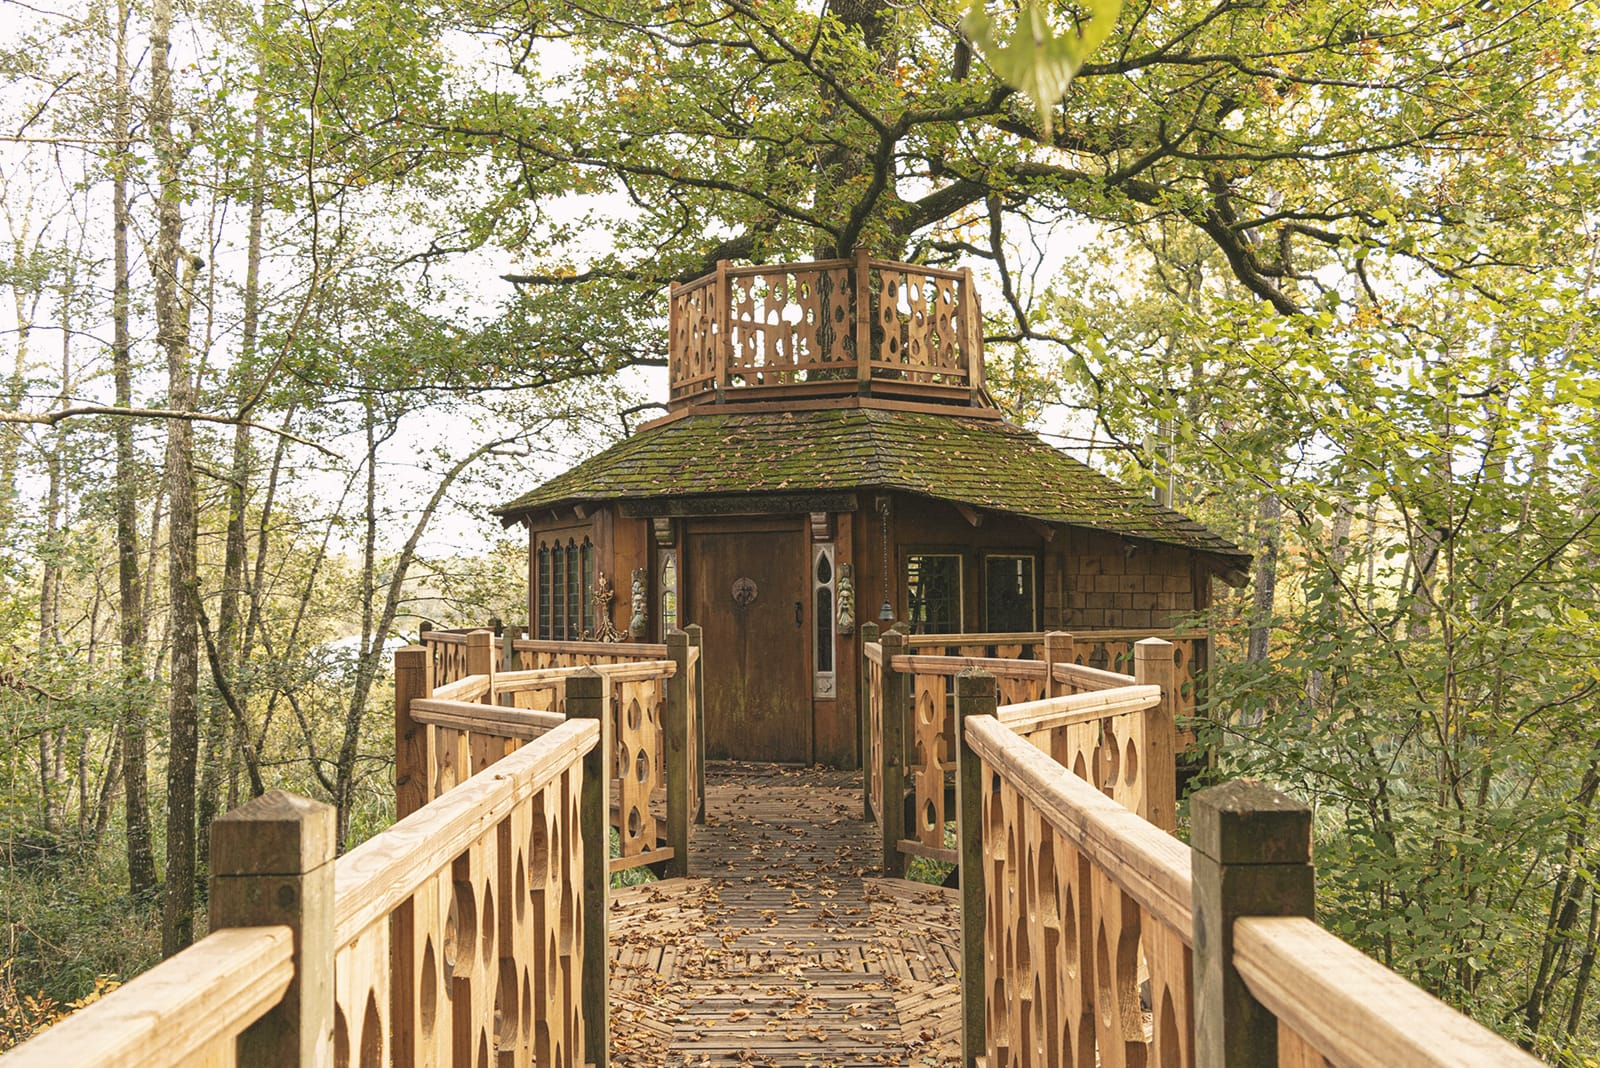 Treehouse in the tree canopy